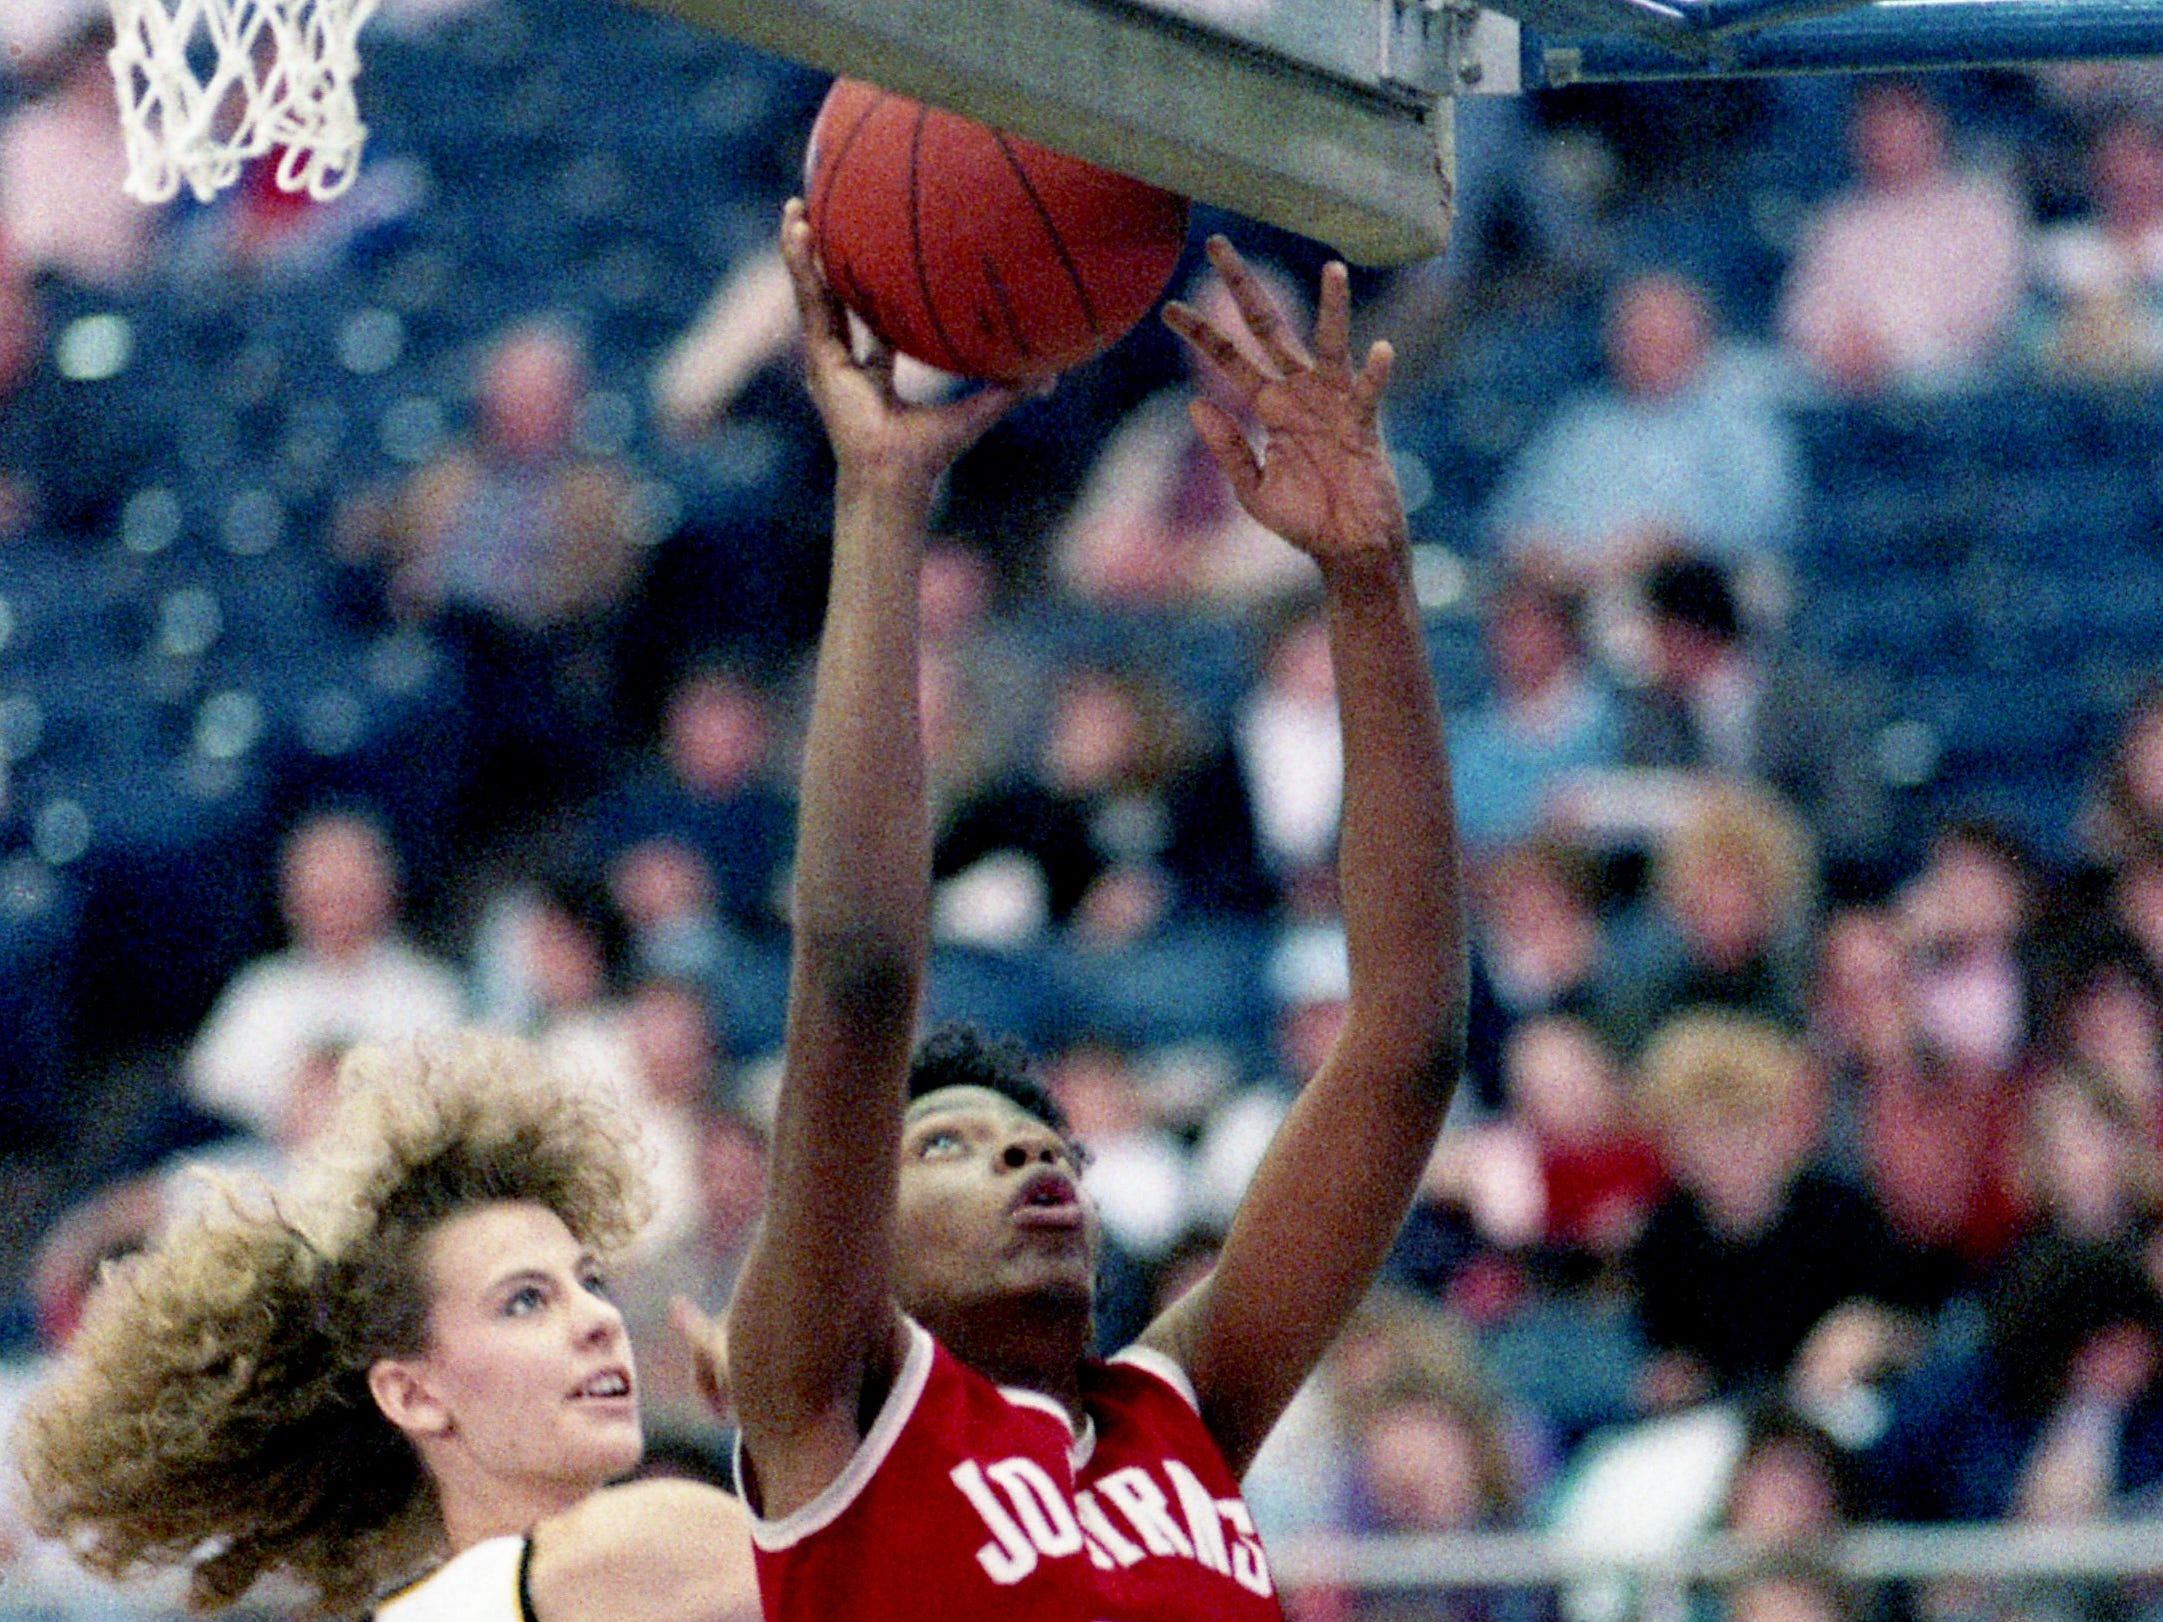 April Gardner (20) of Jo Byrns High pulls down a rebound in front of Annette Aaron of Pickett County High. Gardner pulled down 11 rebounds, but it was enough as Pickett County won 62-60 in the opening game of the TSSAA Class A State tournament at MTSU's Murphy Center on March 8, 1989.